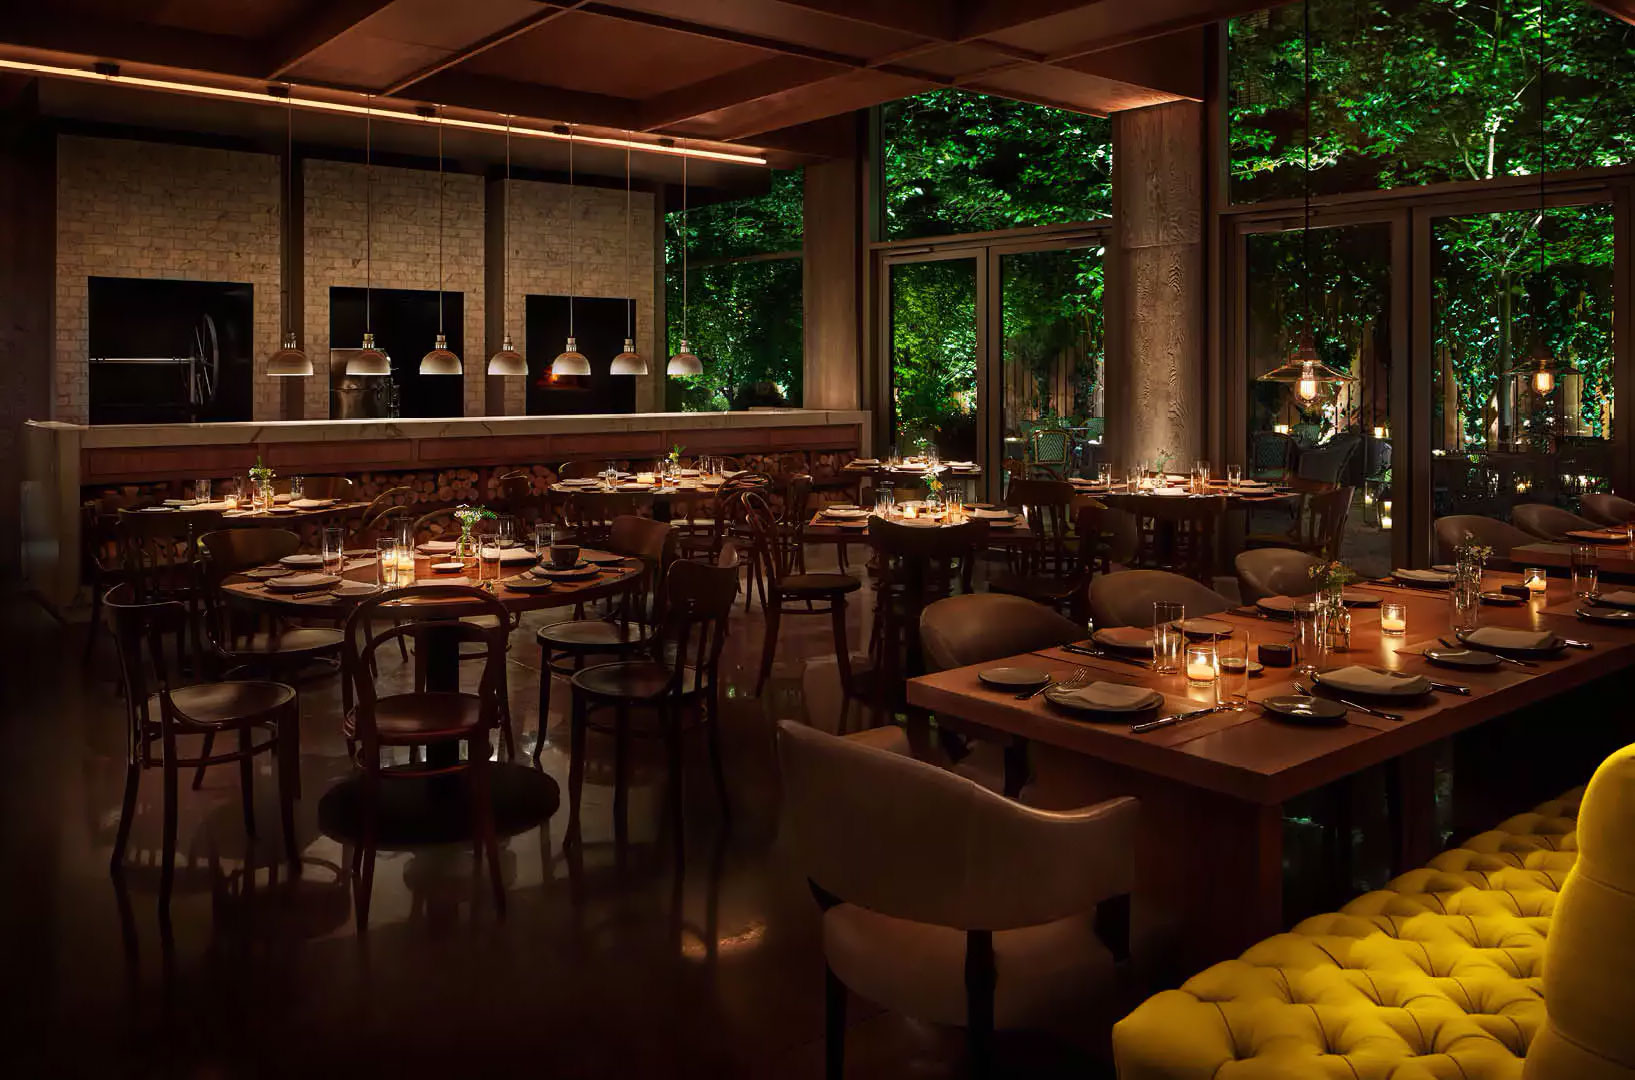 Public Hotel New York City An Ian Schrager Hotel